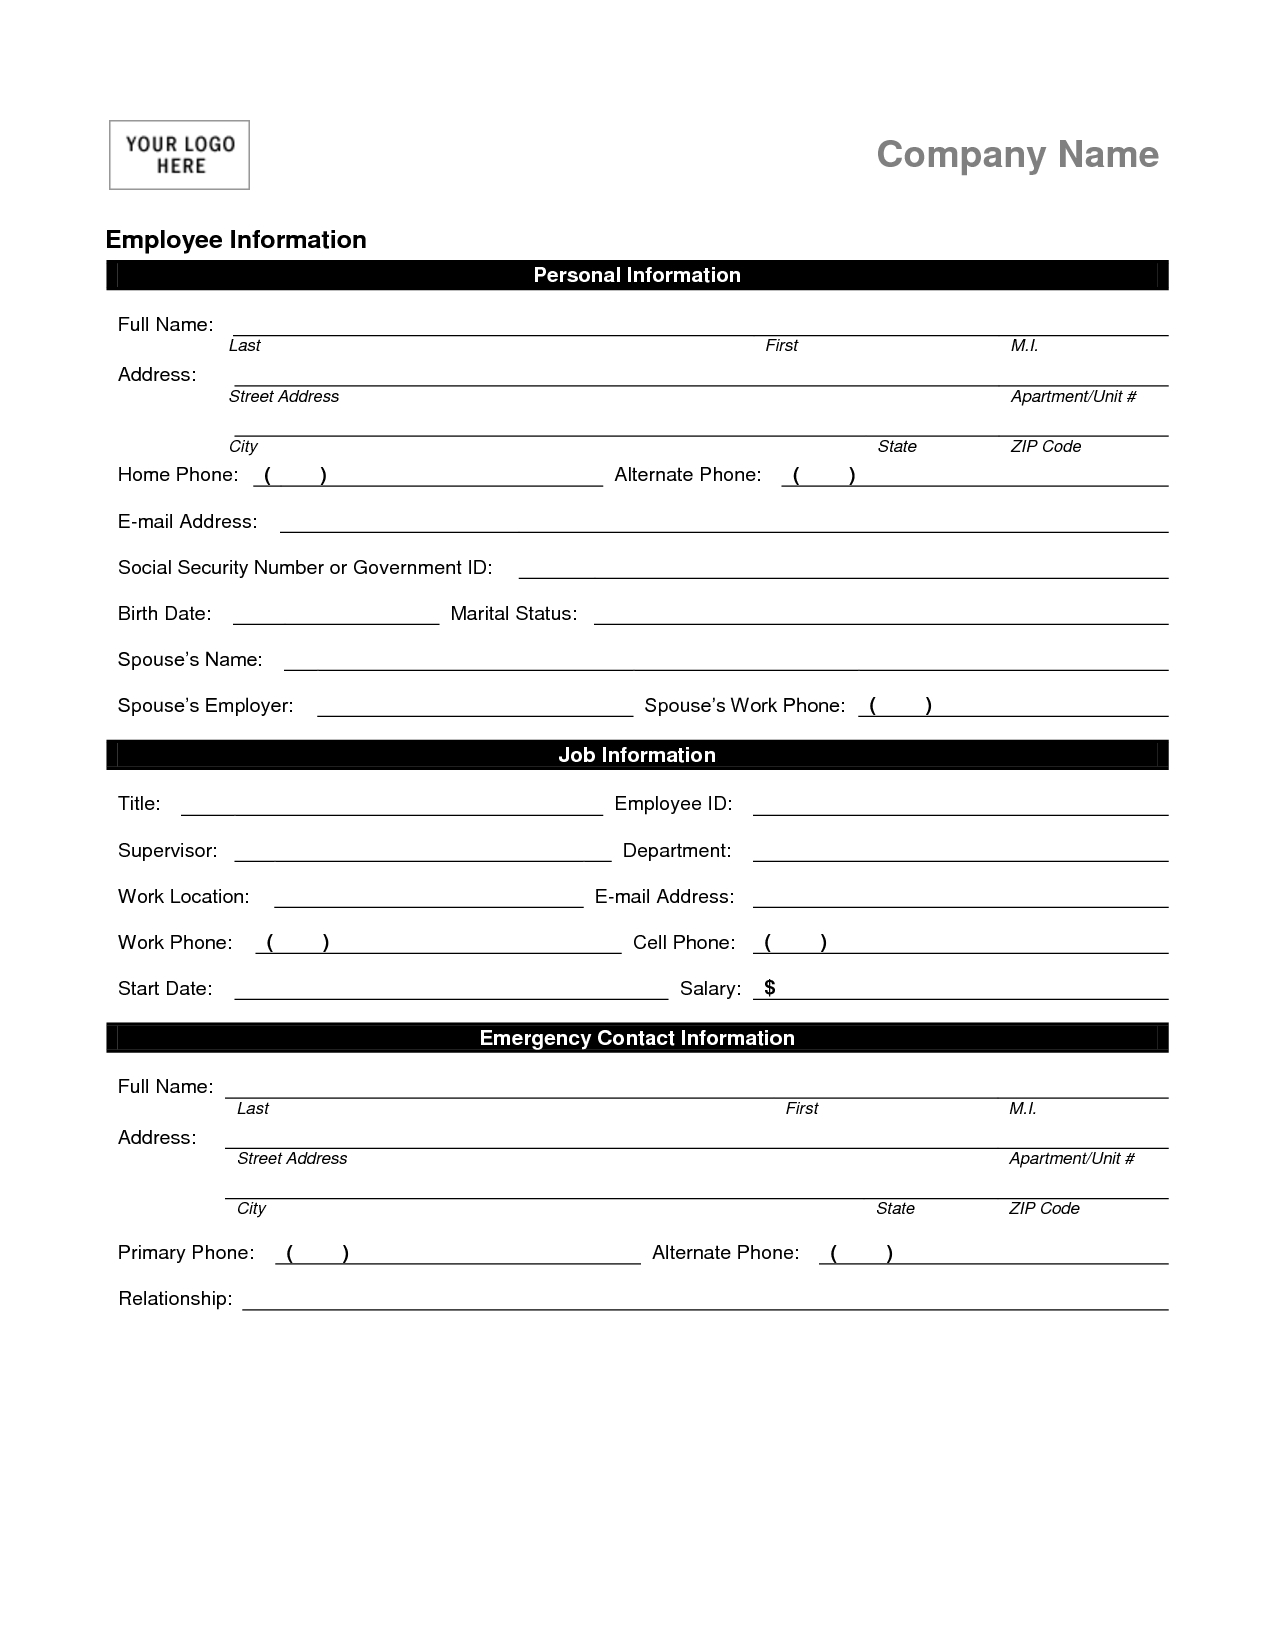 Employee Personal Information Form Template  Employee  Employment Within Business Information Form Template